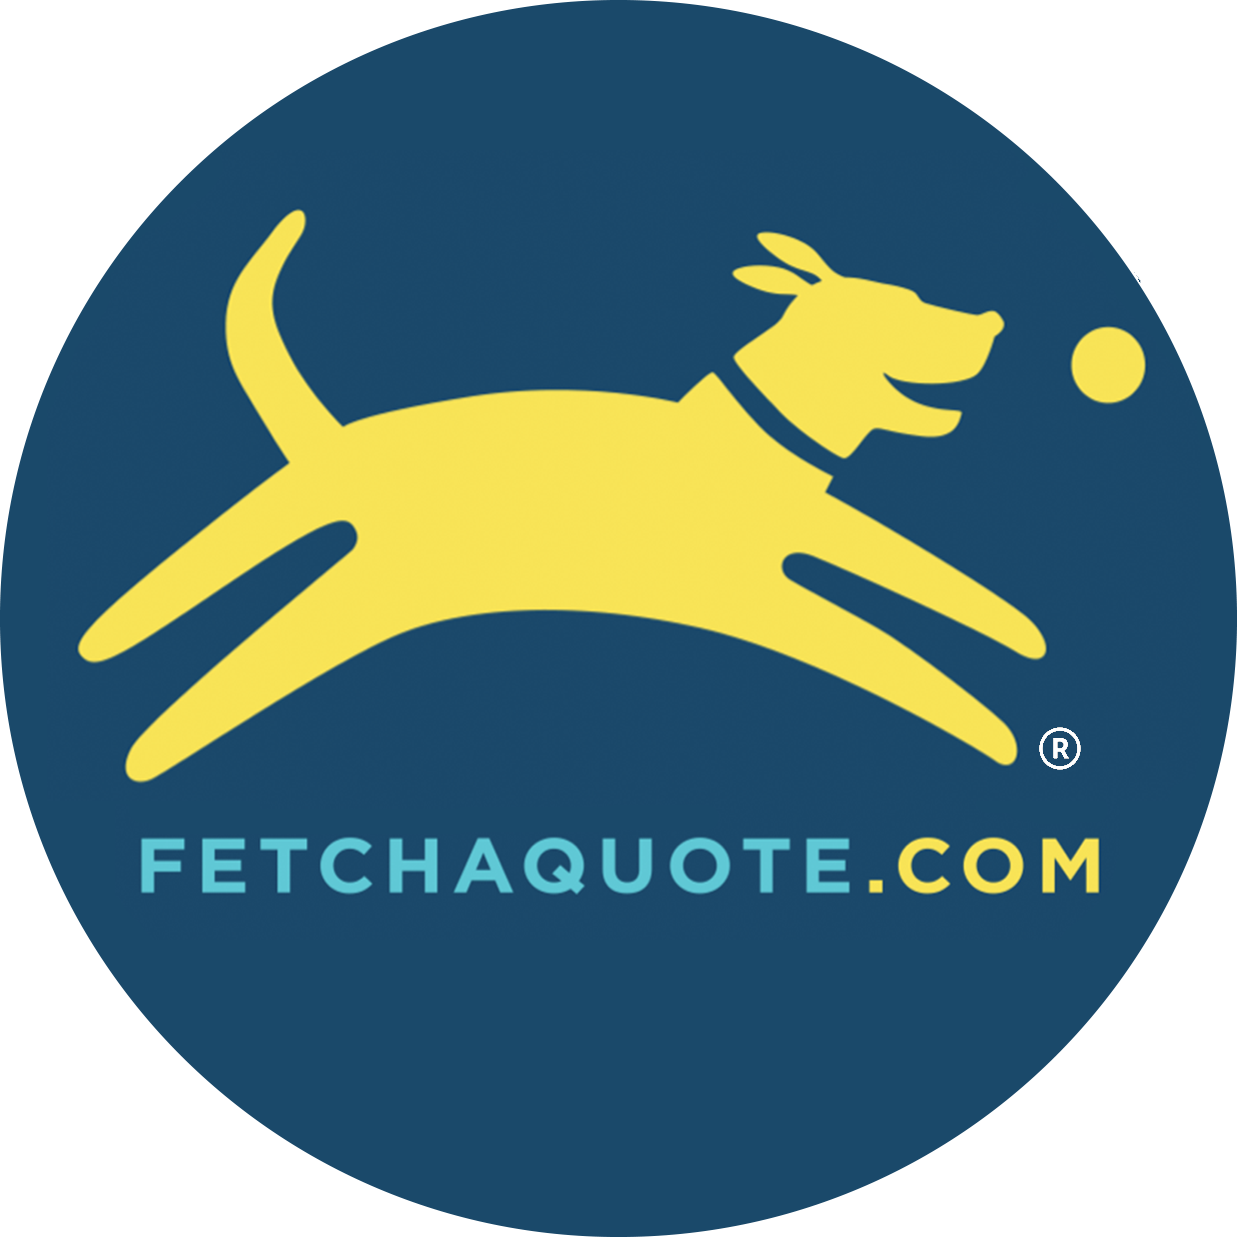 Car Insurance Quotes Virginia: Fetch! And ComSoft Dealership Management Software Now